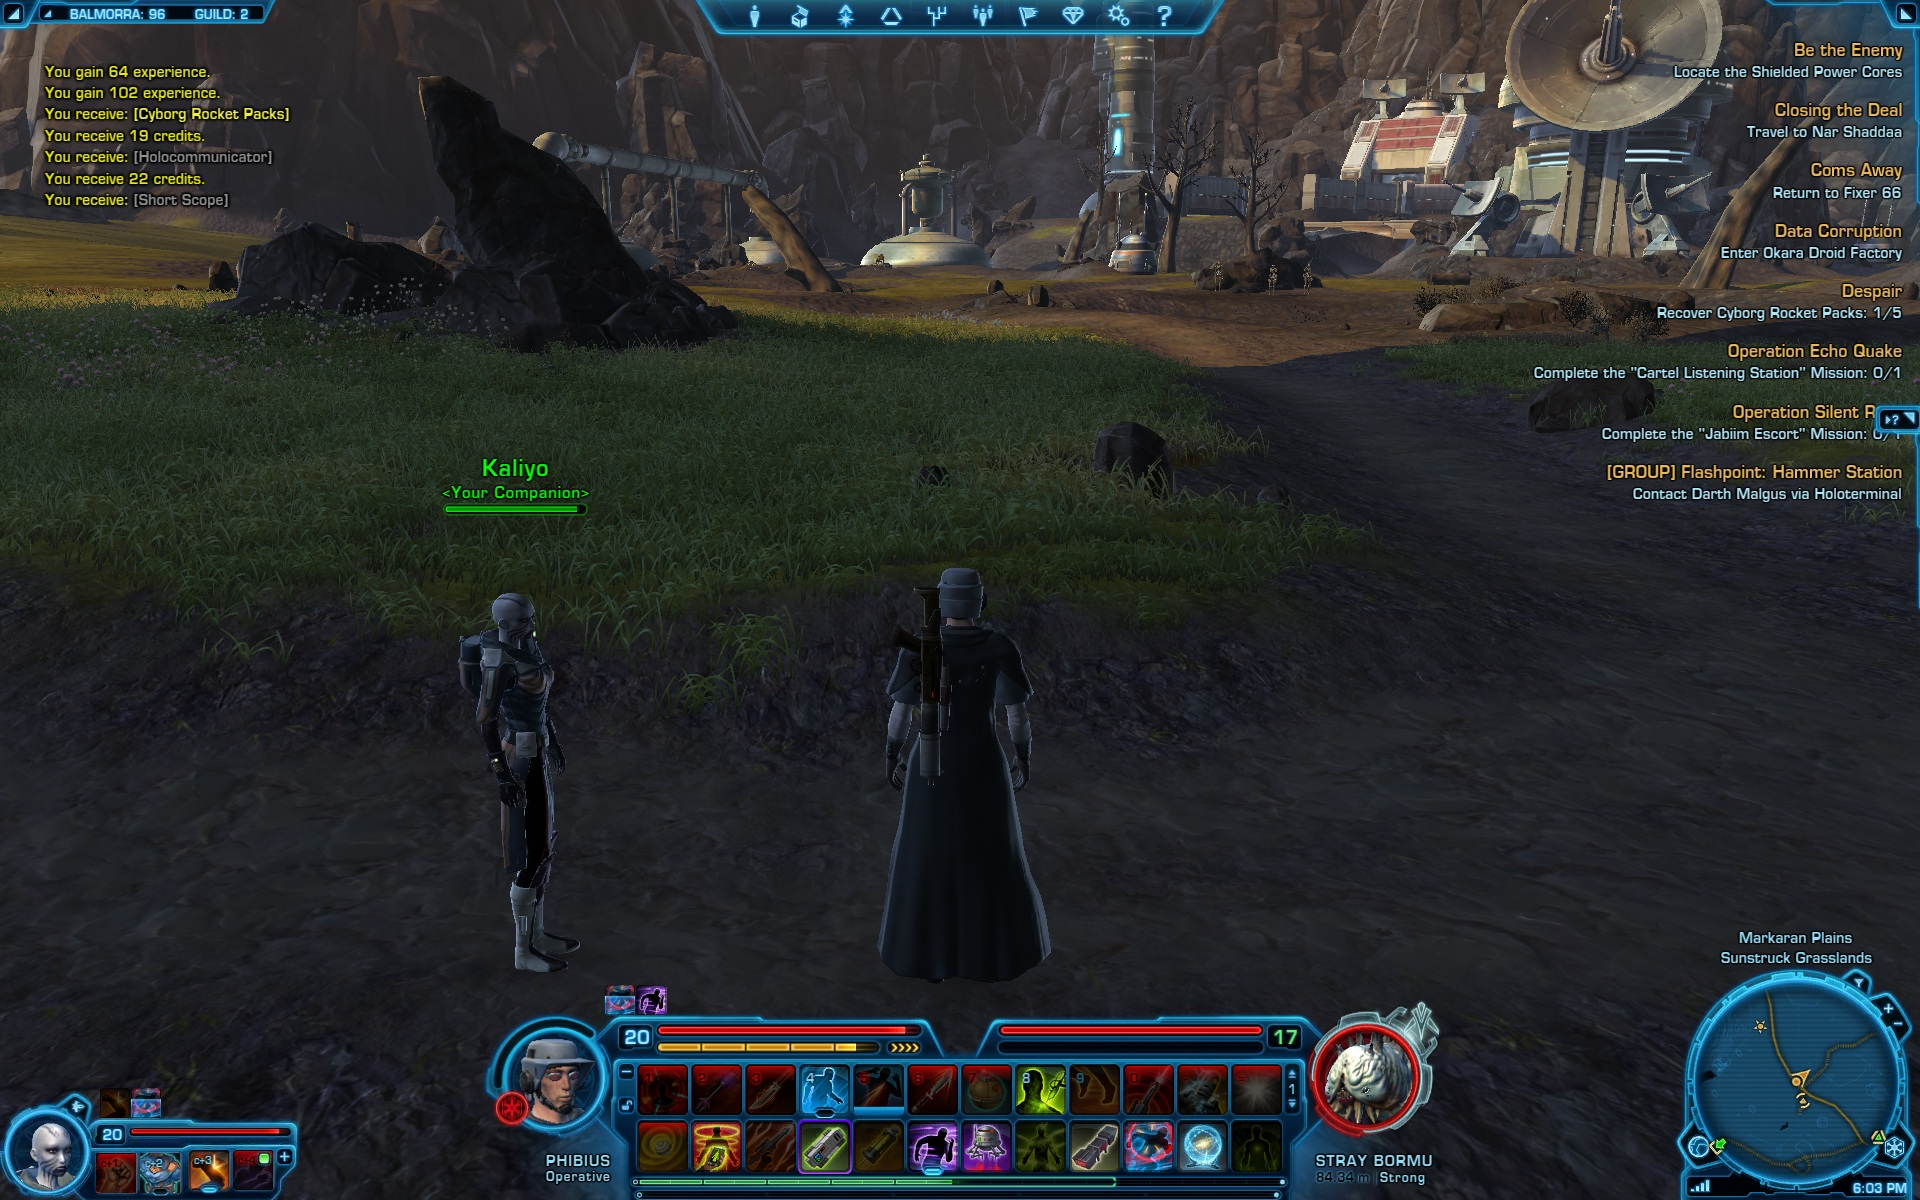 Star Wars: The Old Republic - Journal de bord 2